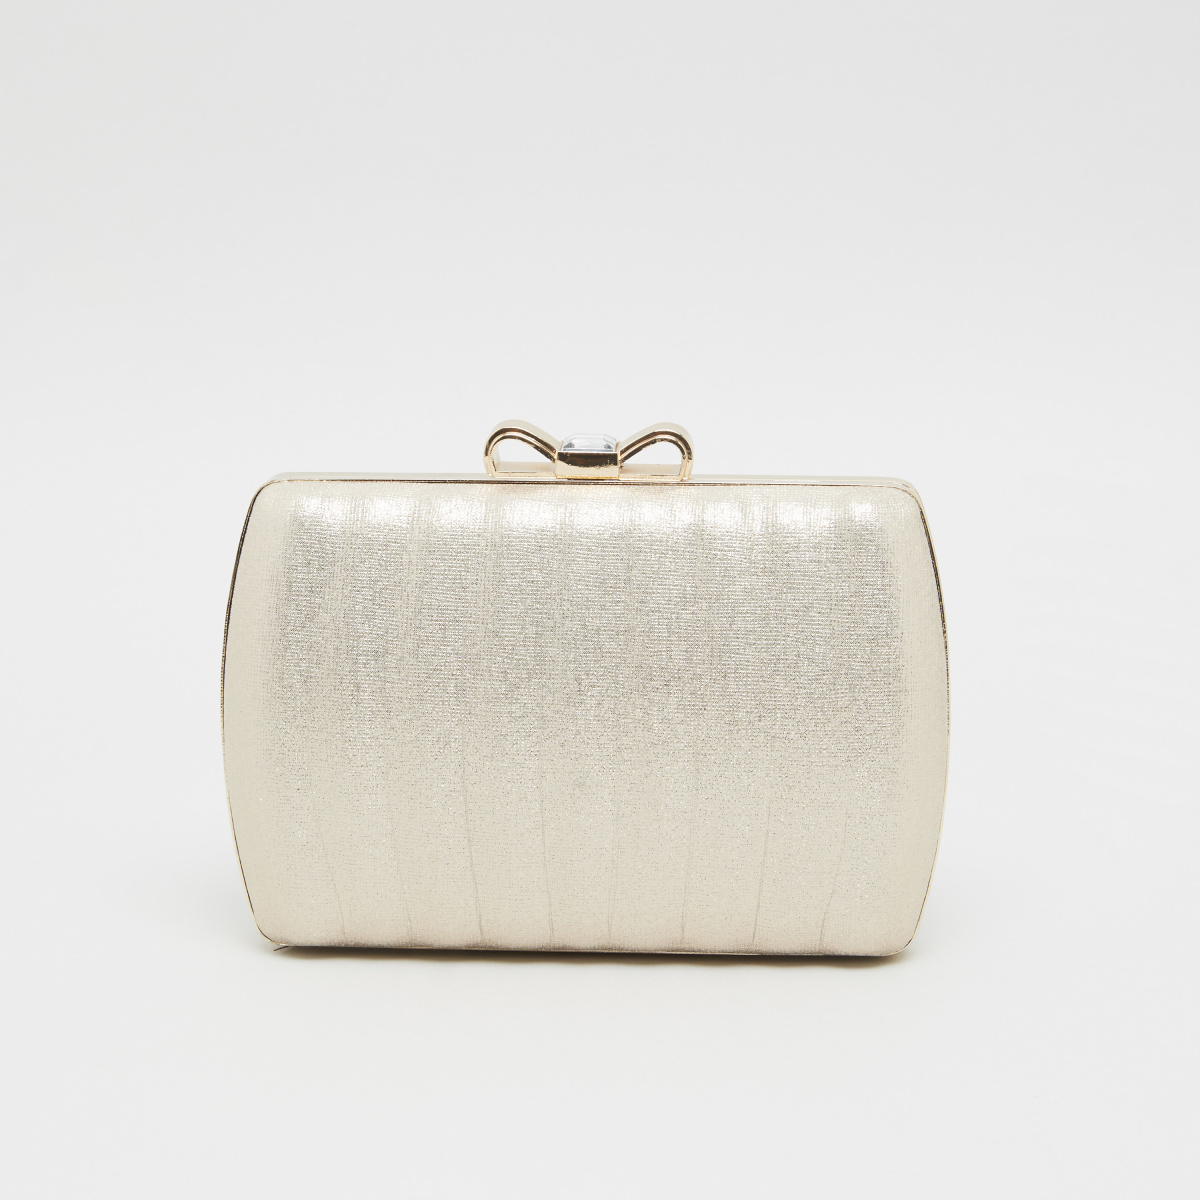 Sasha Textured Clutch with Bow Accent